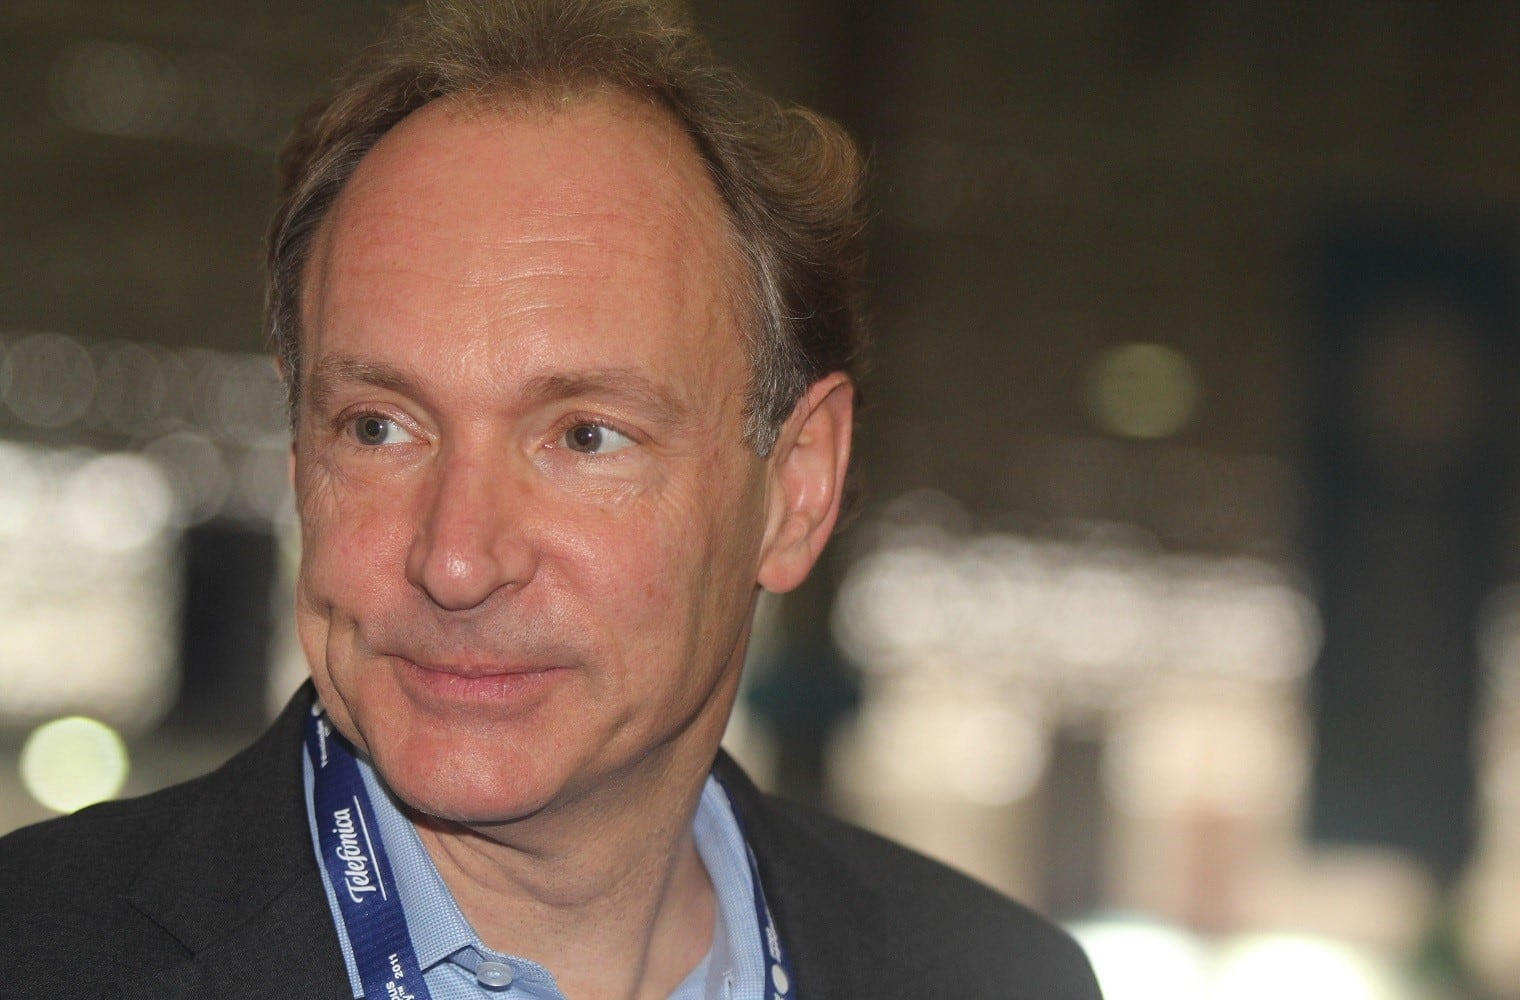 Influencers que cambiaron el mundo: Tim Berners-Lee